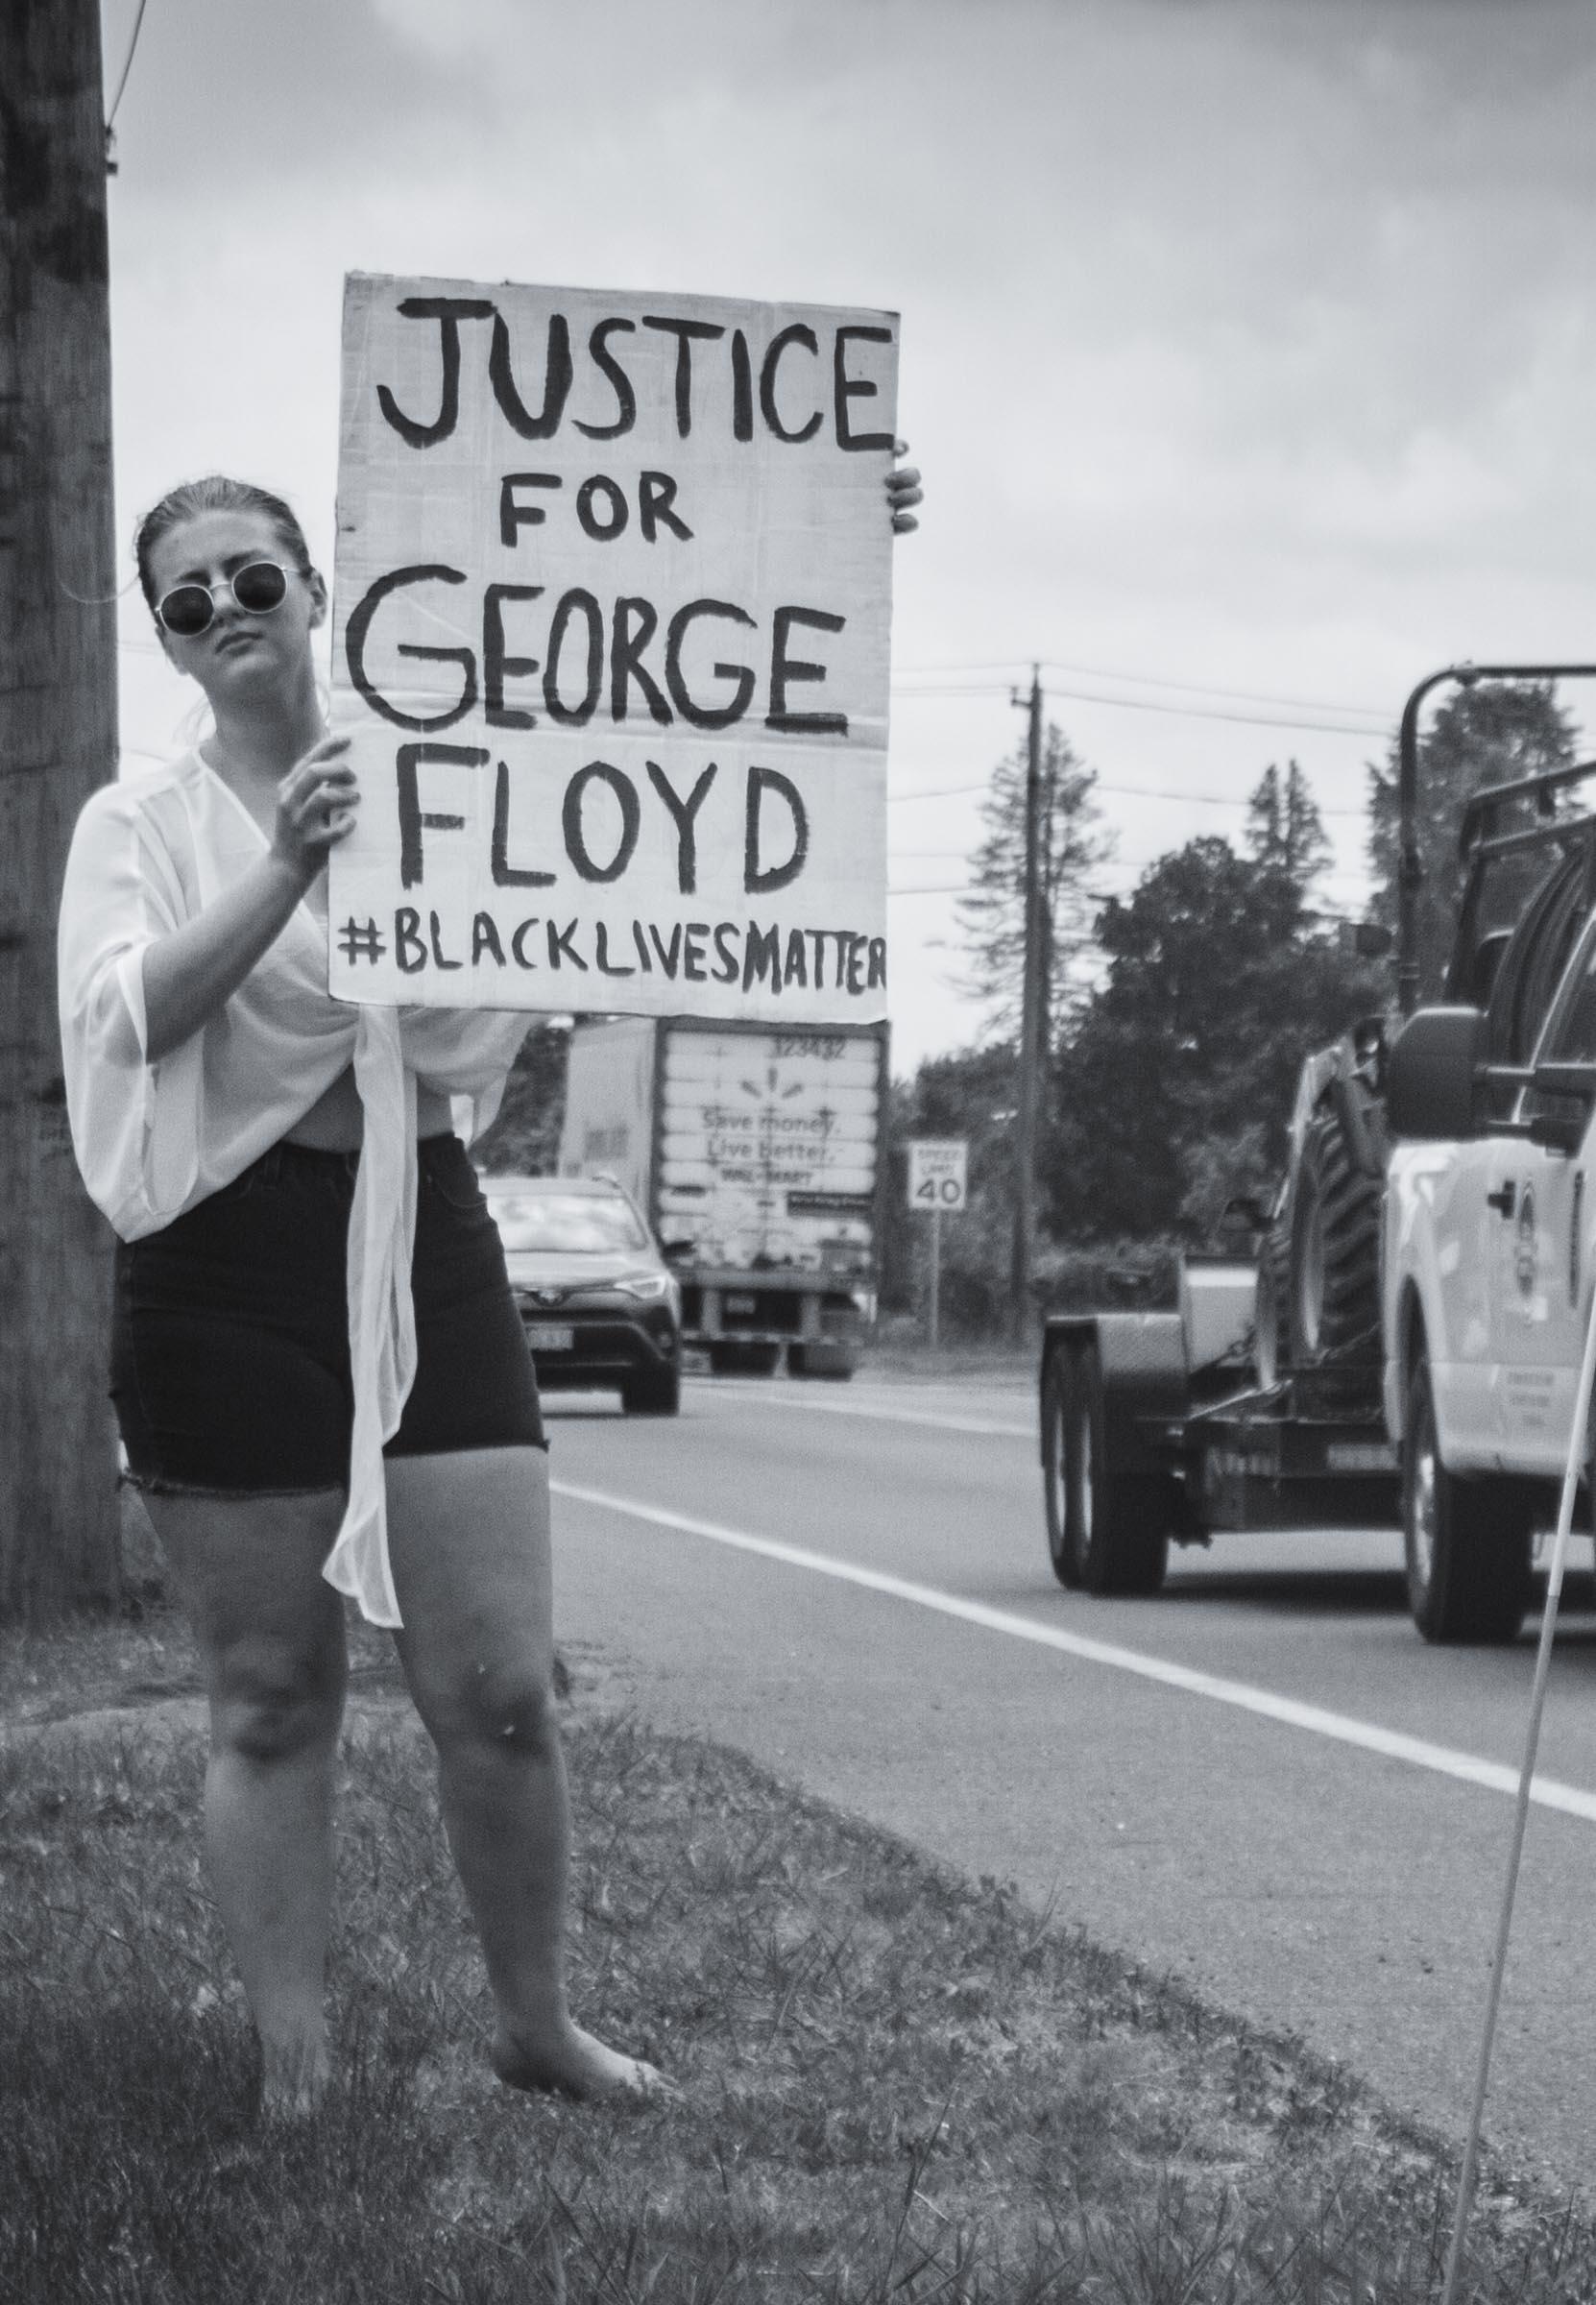 A solo protester holds up a 'Justice for George Floyd' placard along Route 9 in Hadley MA.